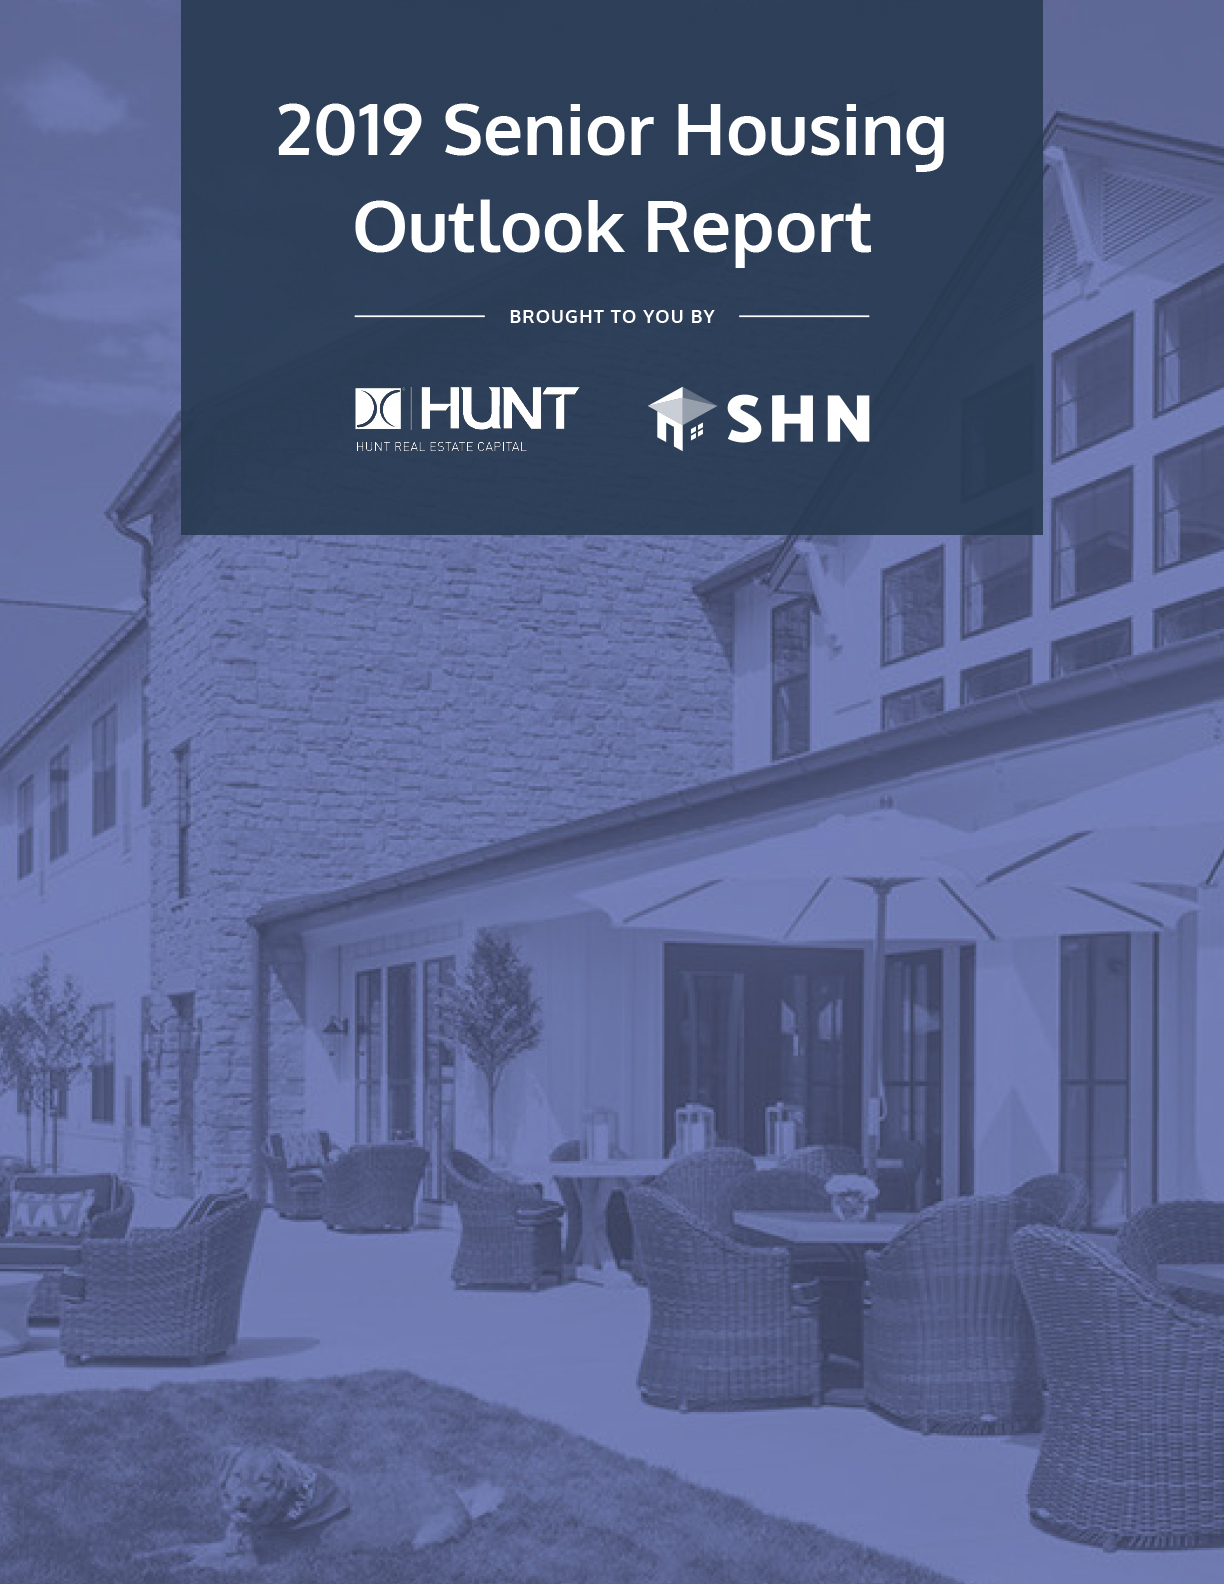 2019 Senior Housing Outlook Report